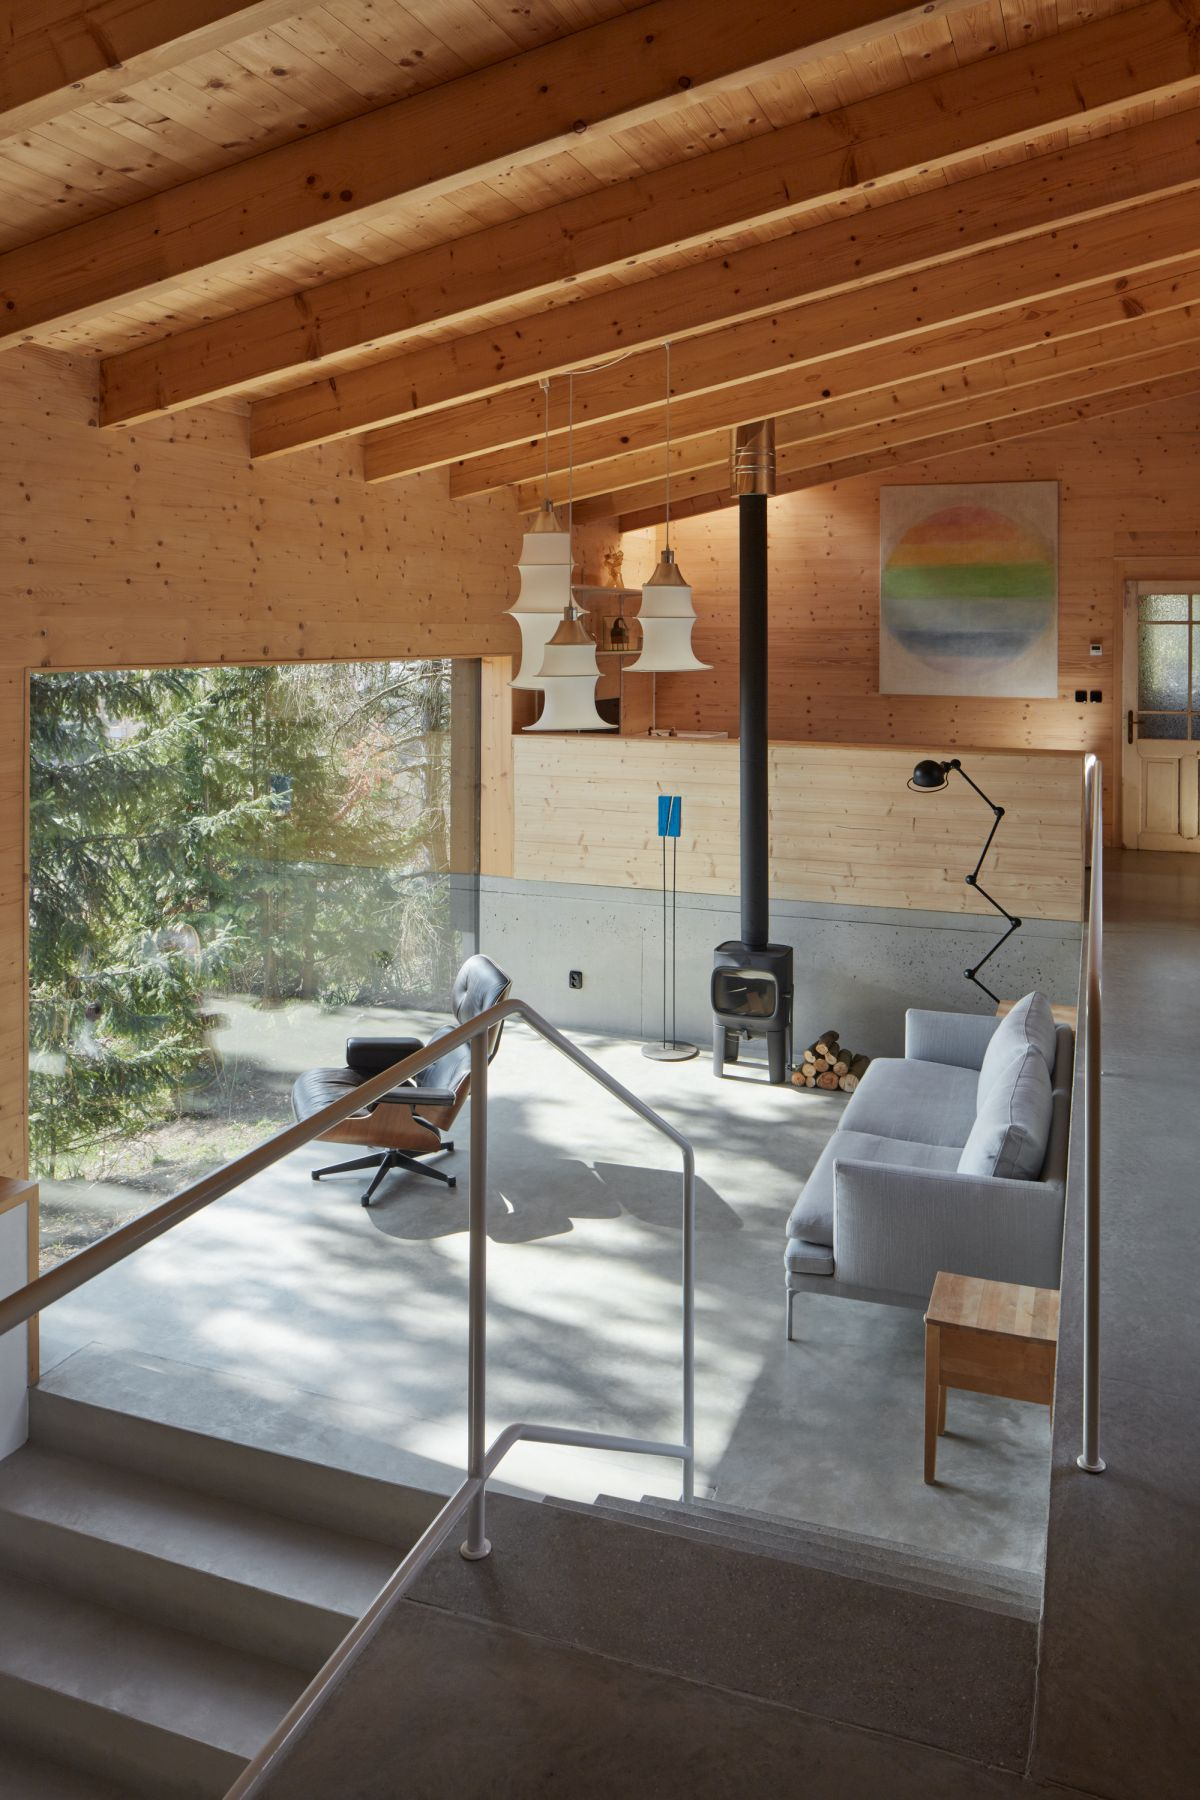 1559131838 471 a beautiful house hidden behind a large concrete wall - A Beautiful House Hidden Behind A Large Concrete Wall